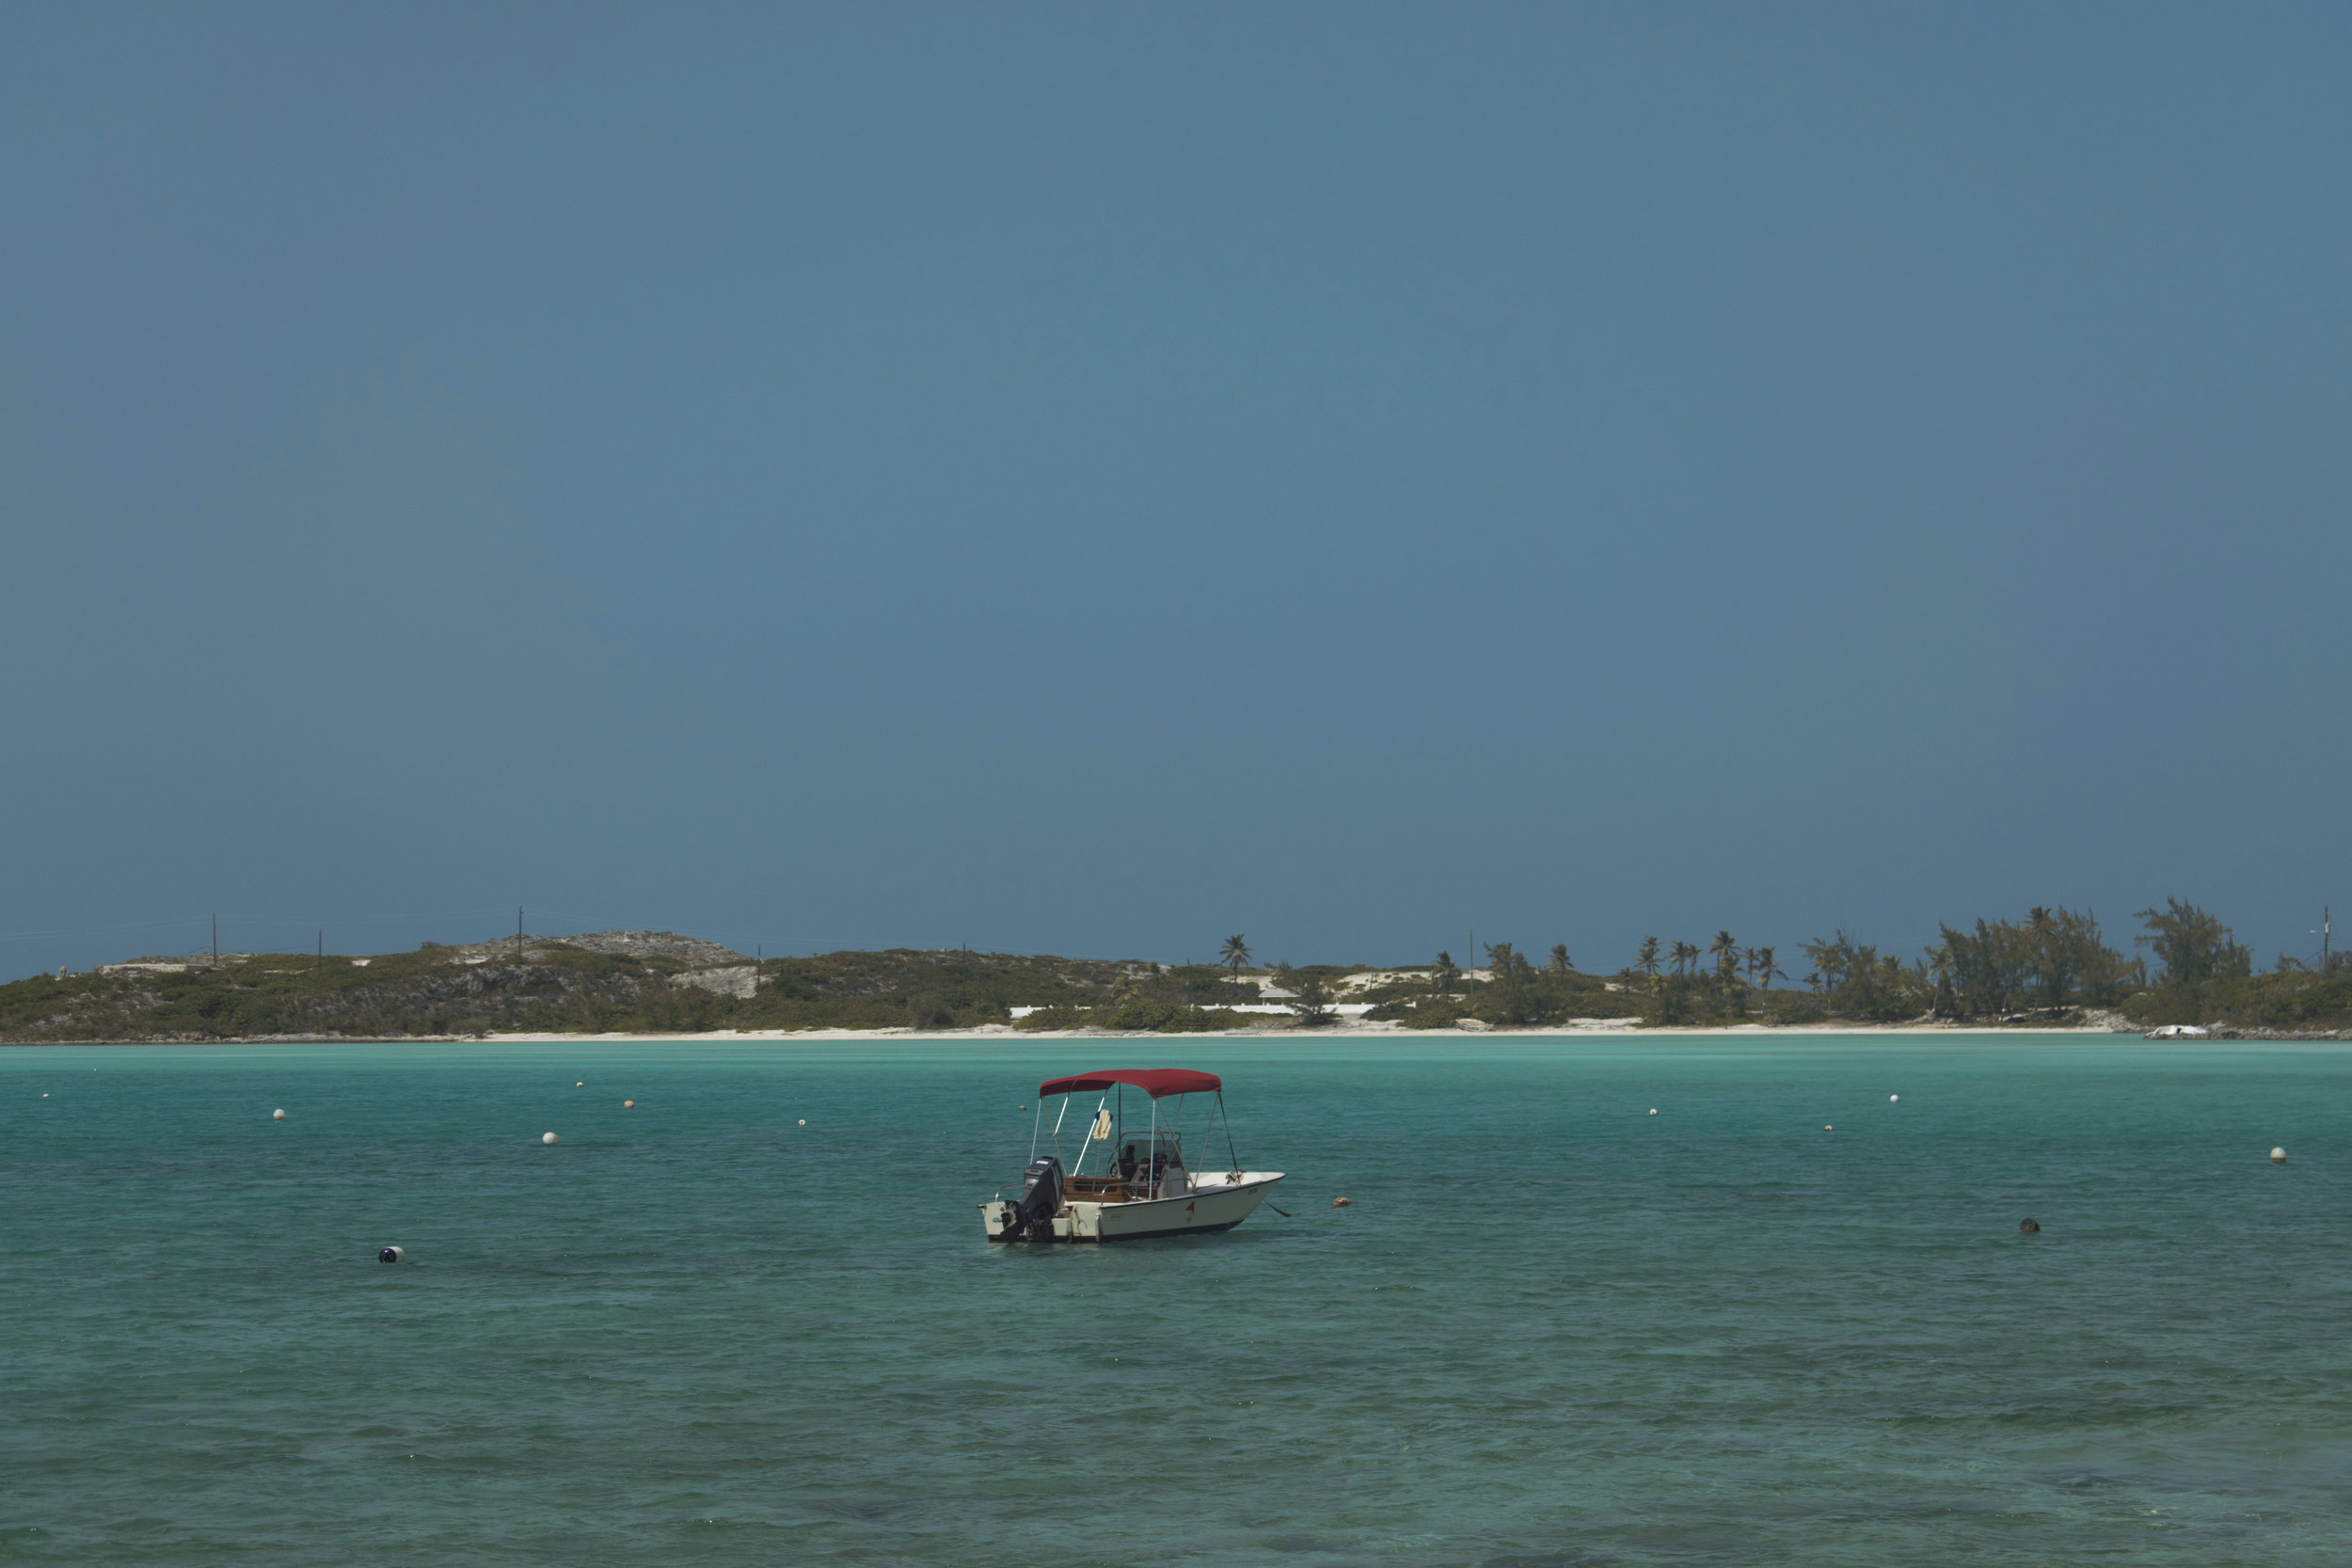 A lone fishing boat tied down off the coast of Exuma. Photo by Ethan Knowles.